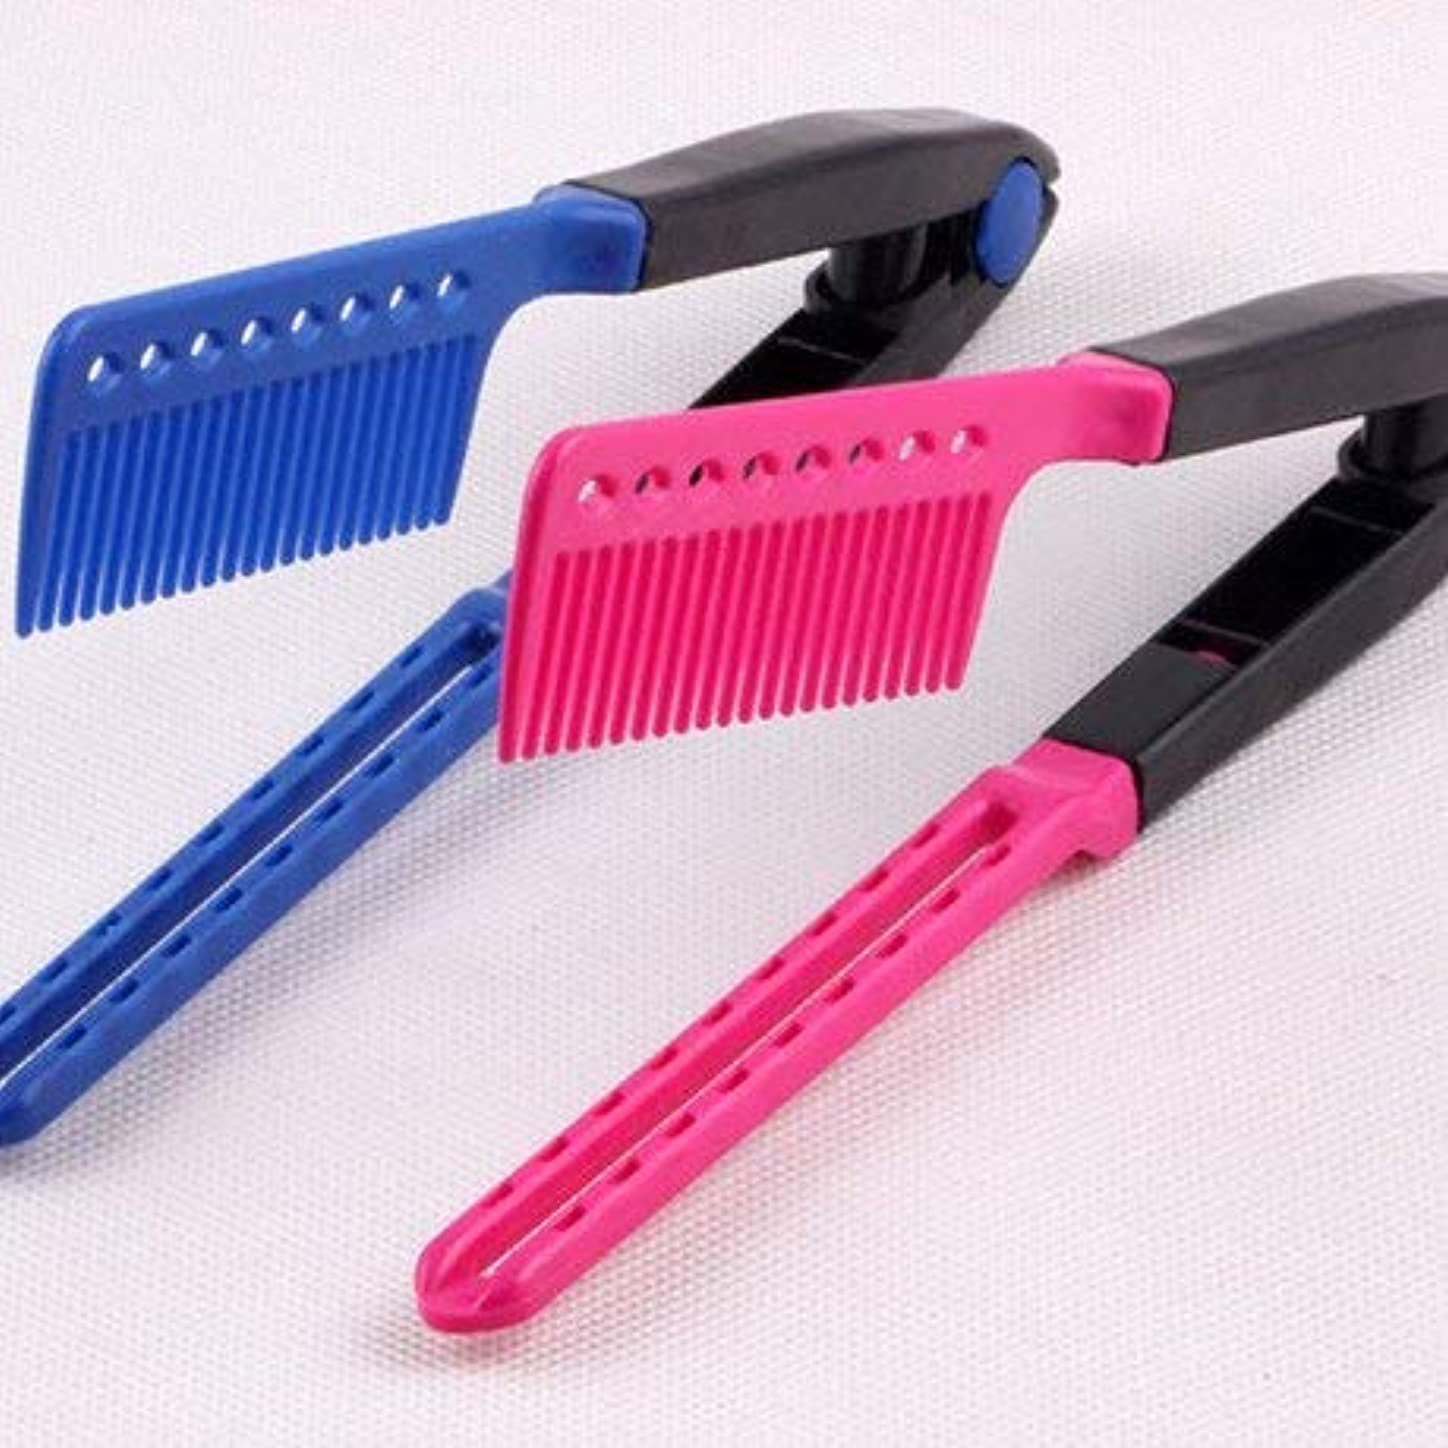 ティーム忘れっぽいキッチンHair Straightening Comb, Haircut Anti-static V Shape Comb Clip Clamp Hairdressing Styling Tools(Rose_Red) [並行輸入品]